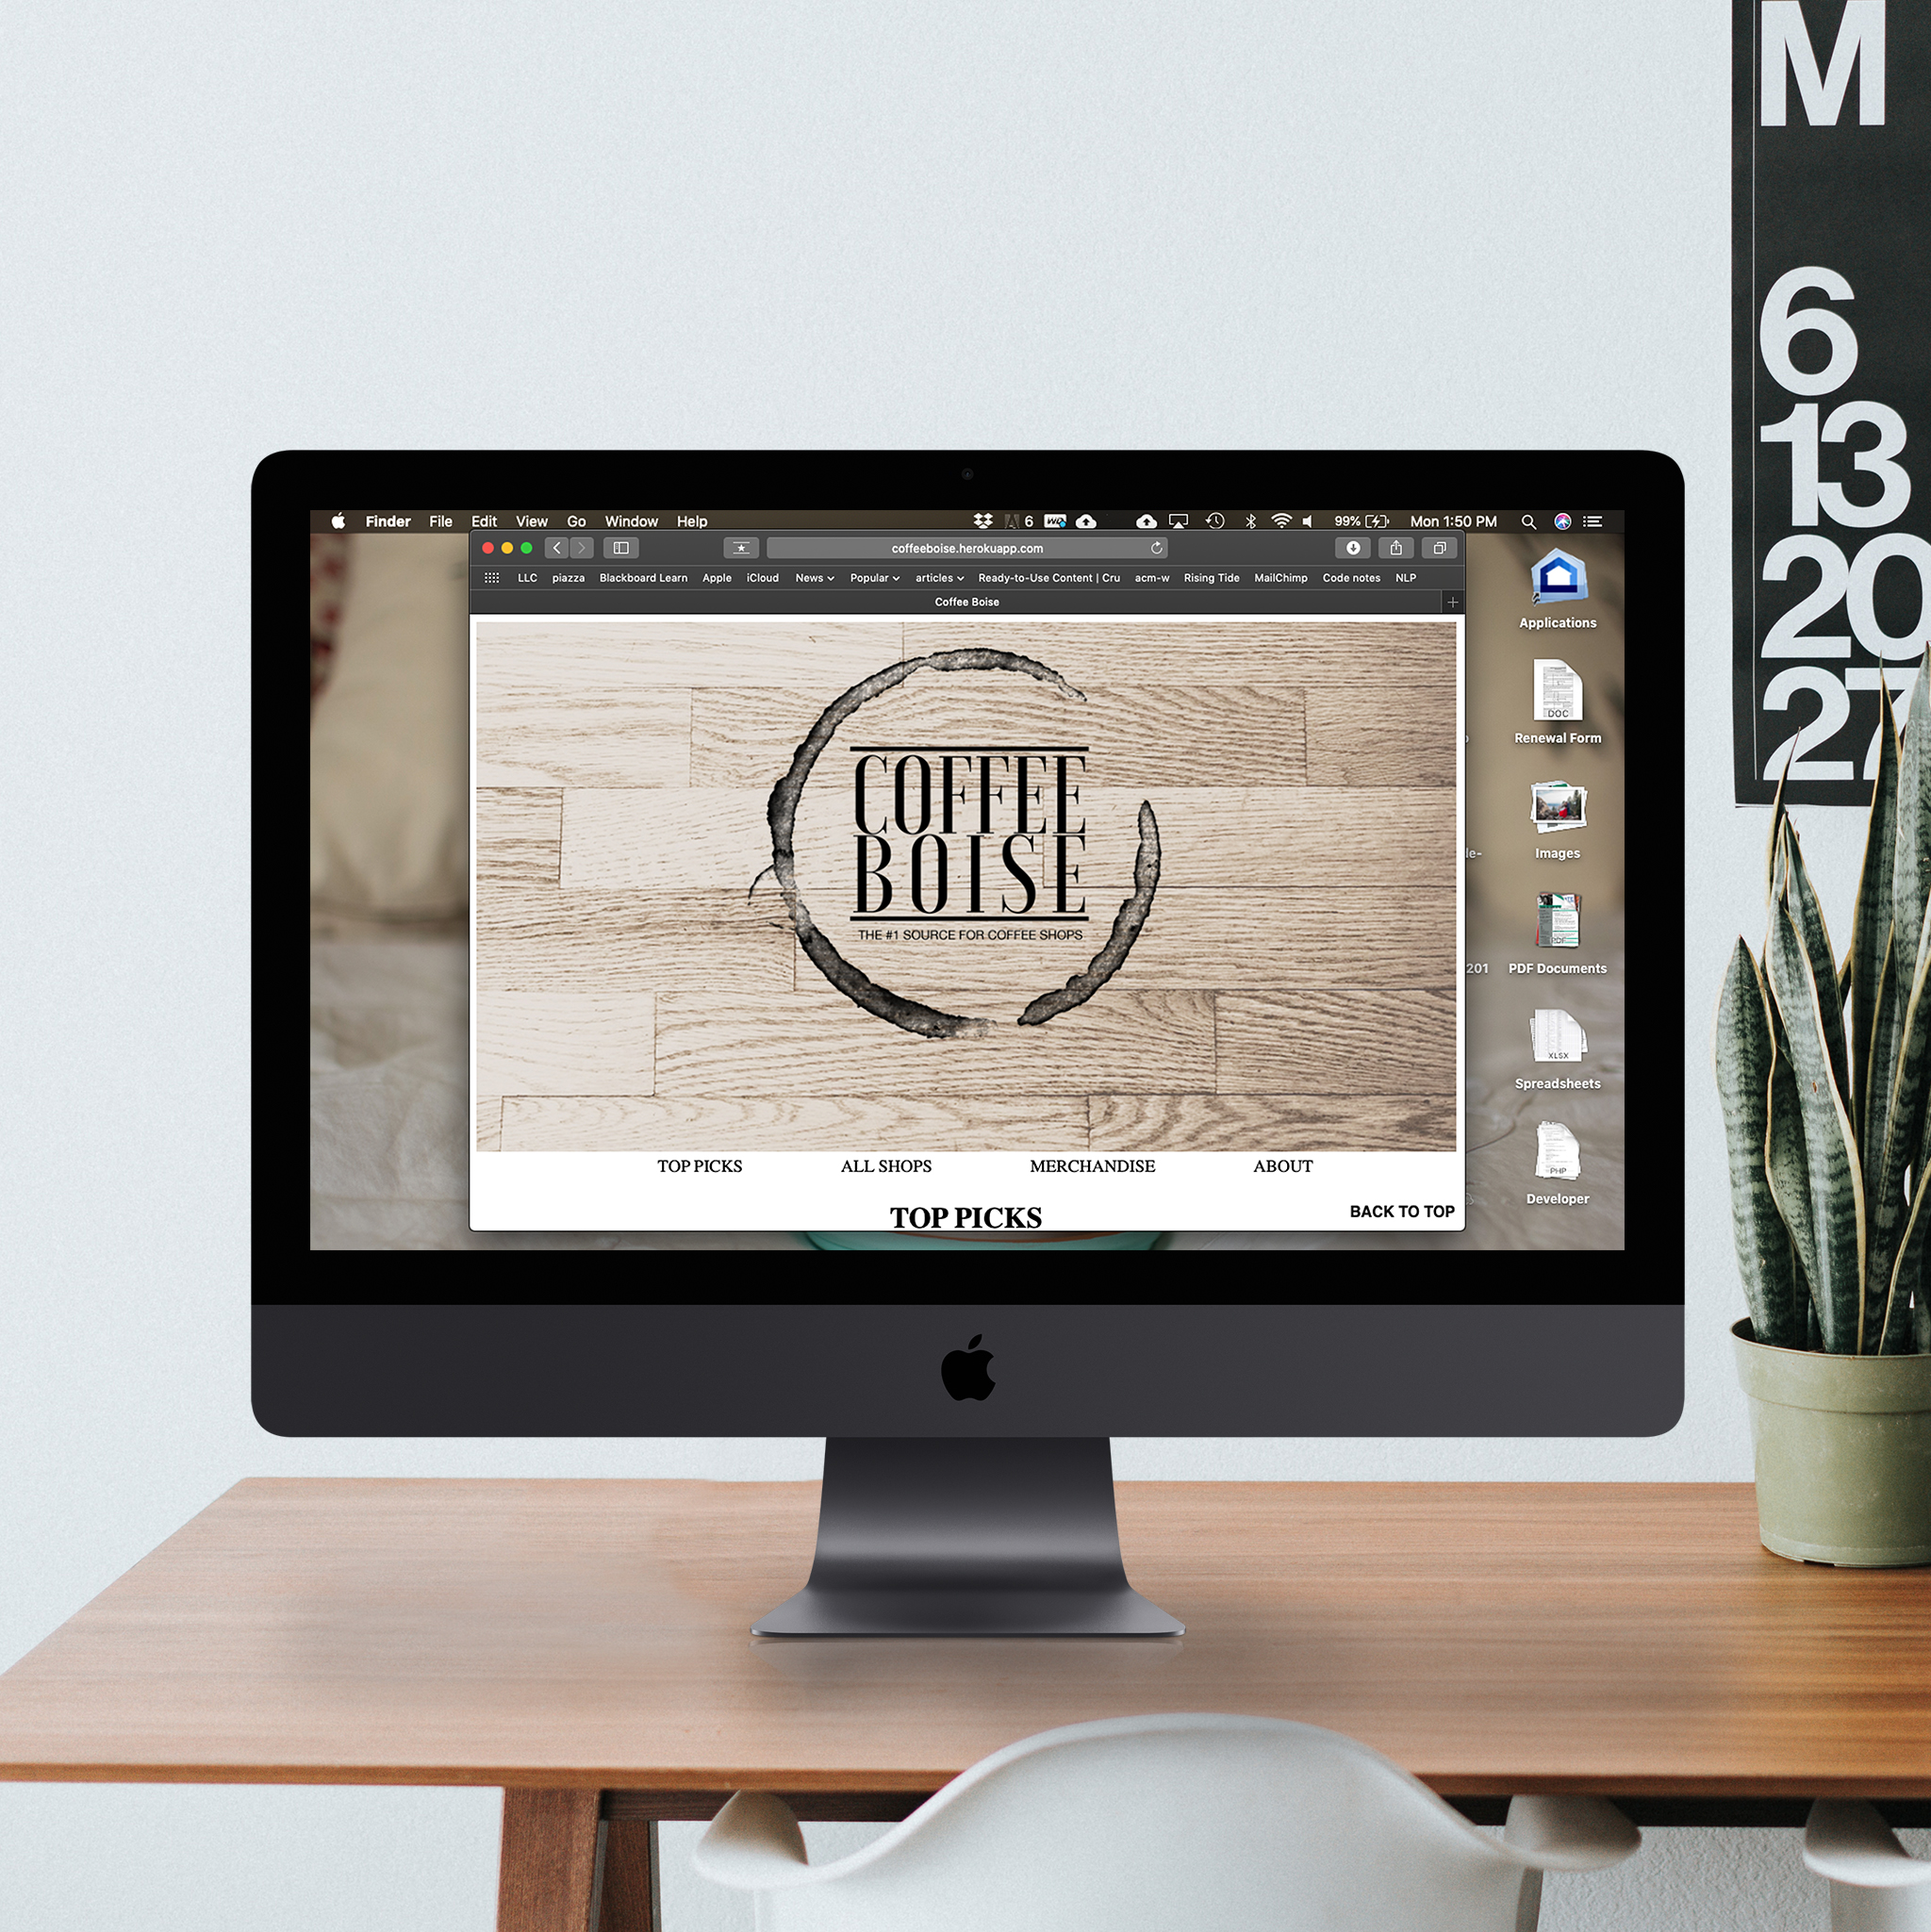 Coffee Boise (Website coded using PHP, JavaScript, HTML, and CSS styling.)